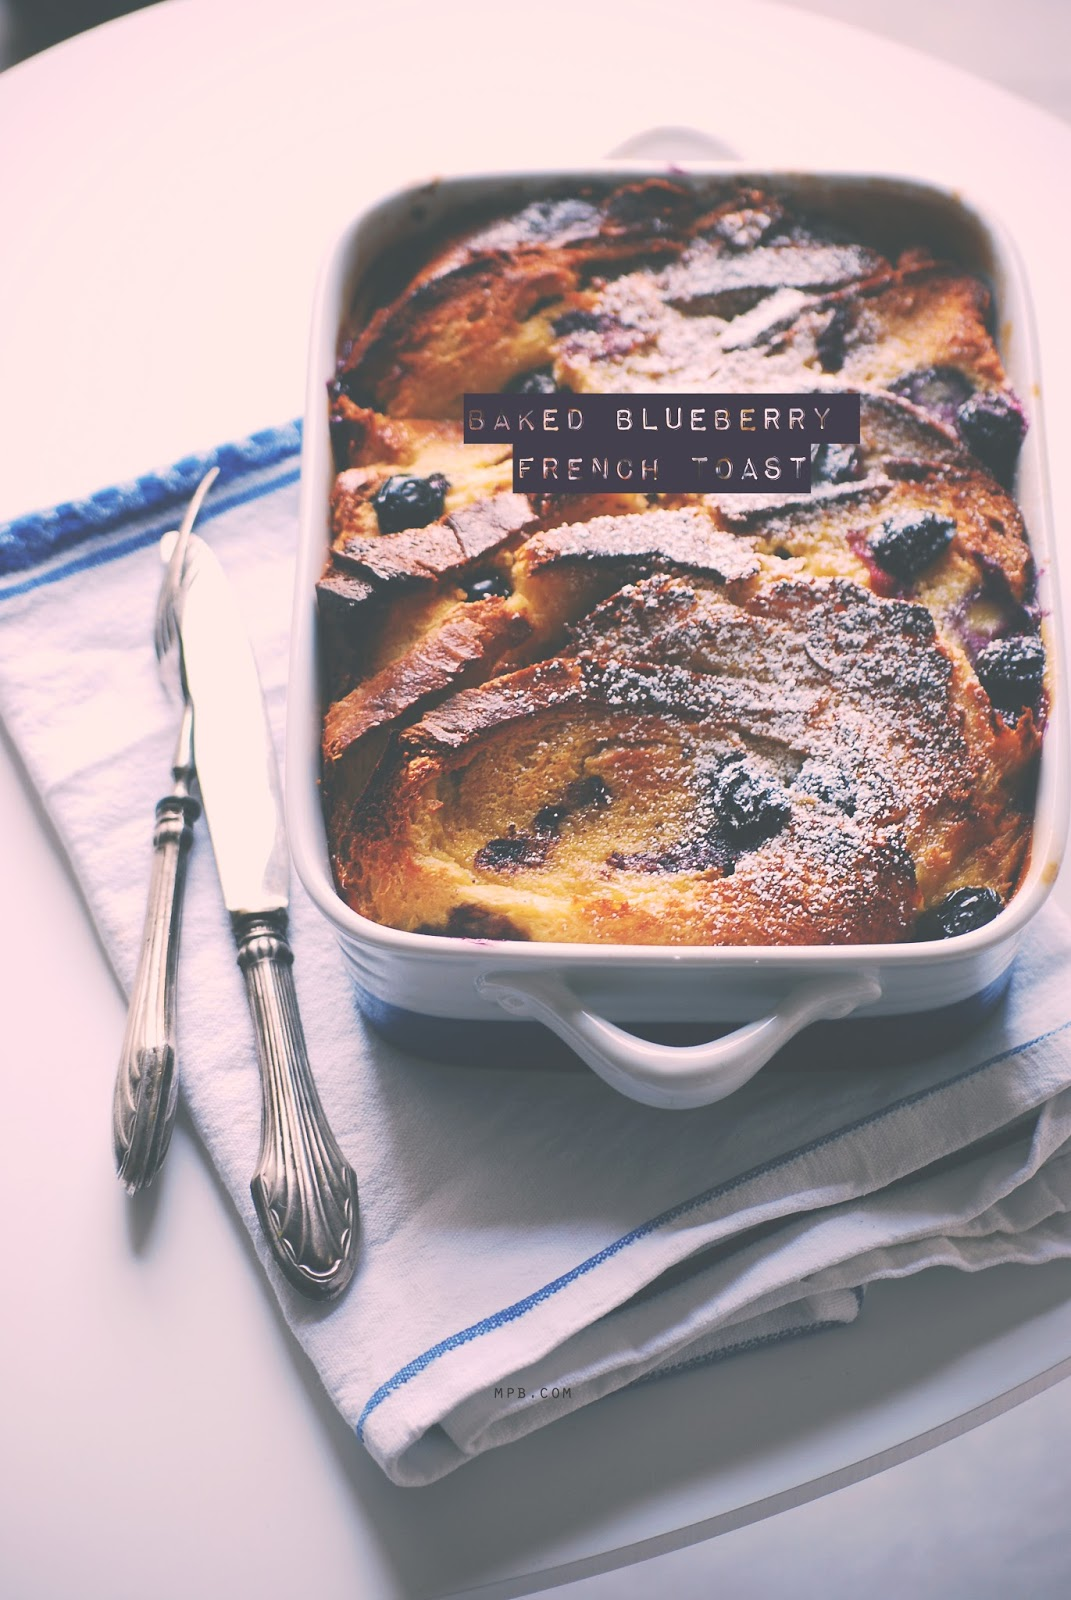 Baked blueberry french toast (how to save a brioche)